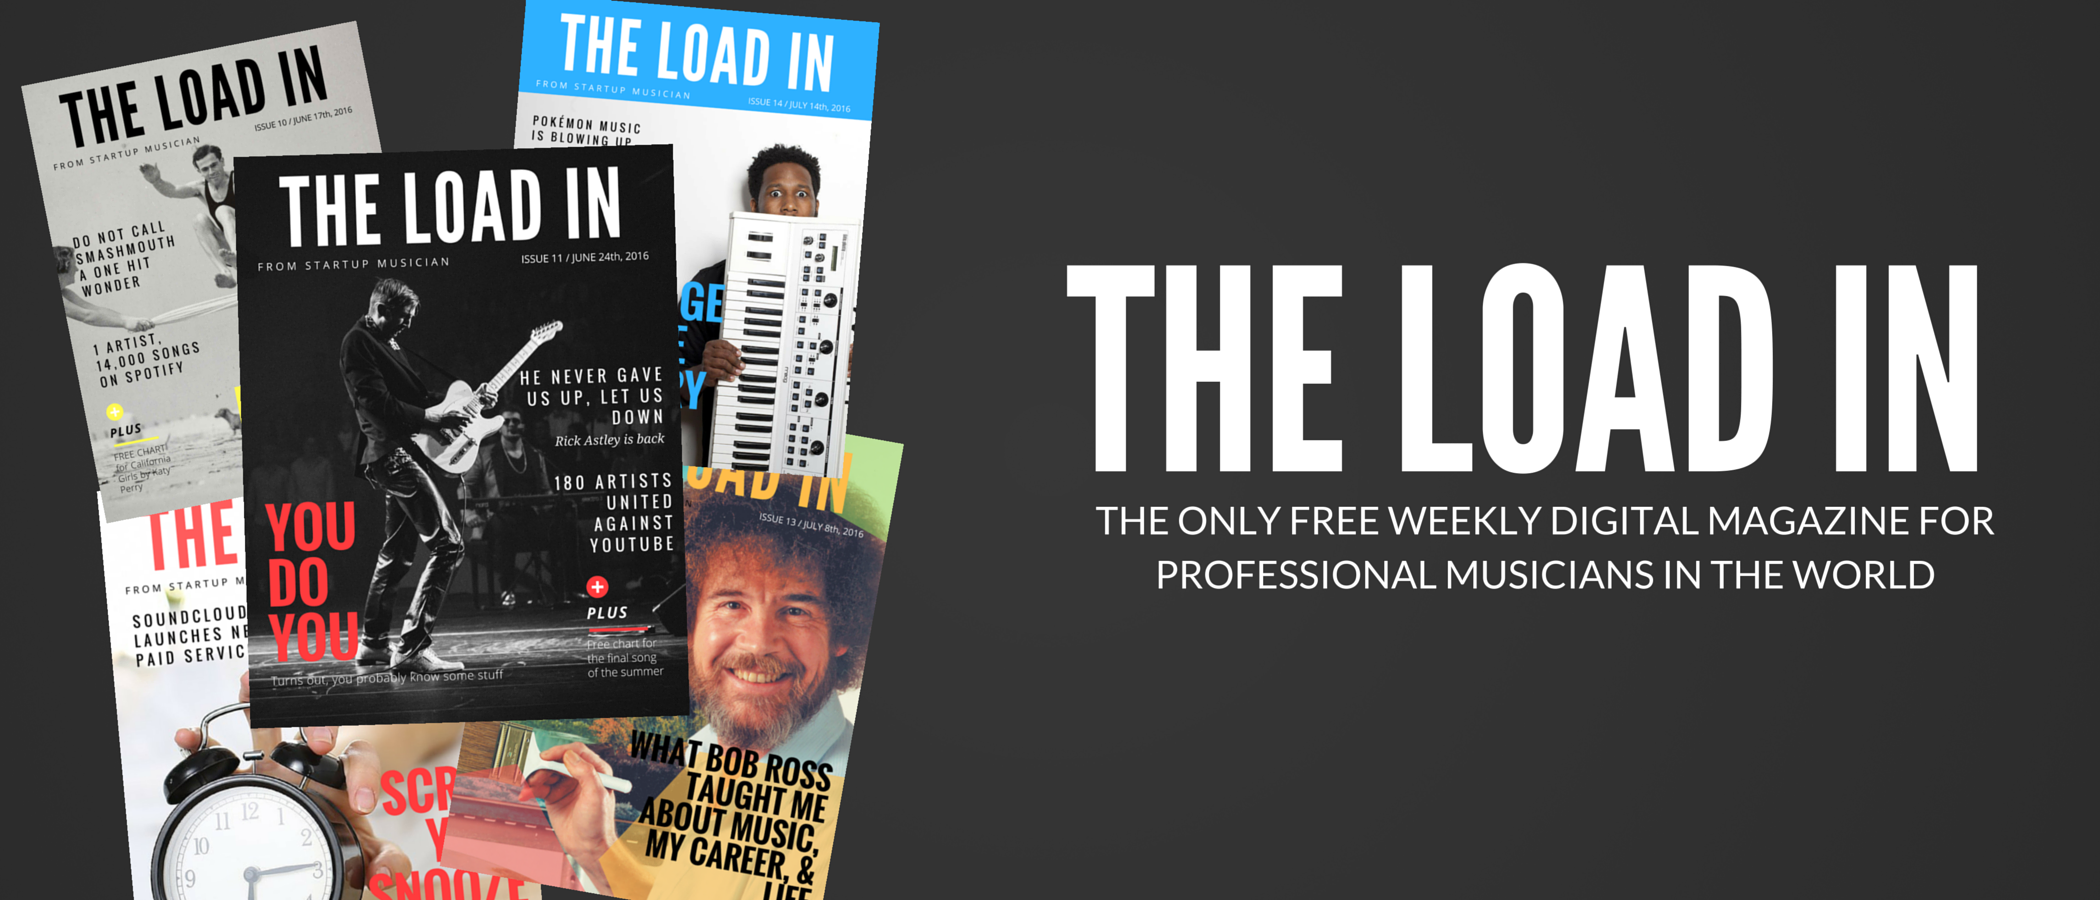 THE ONLY FREE WEEKLY DIGITAL MAGAZINE FOR PROFESSIONAL MUSICIANS IN THE WORLD-2